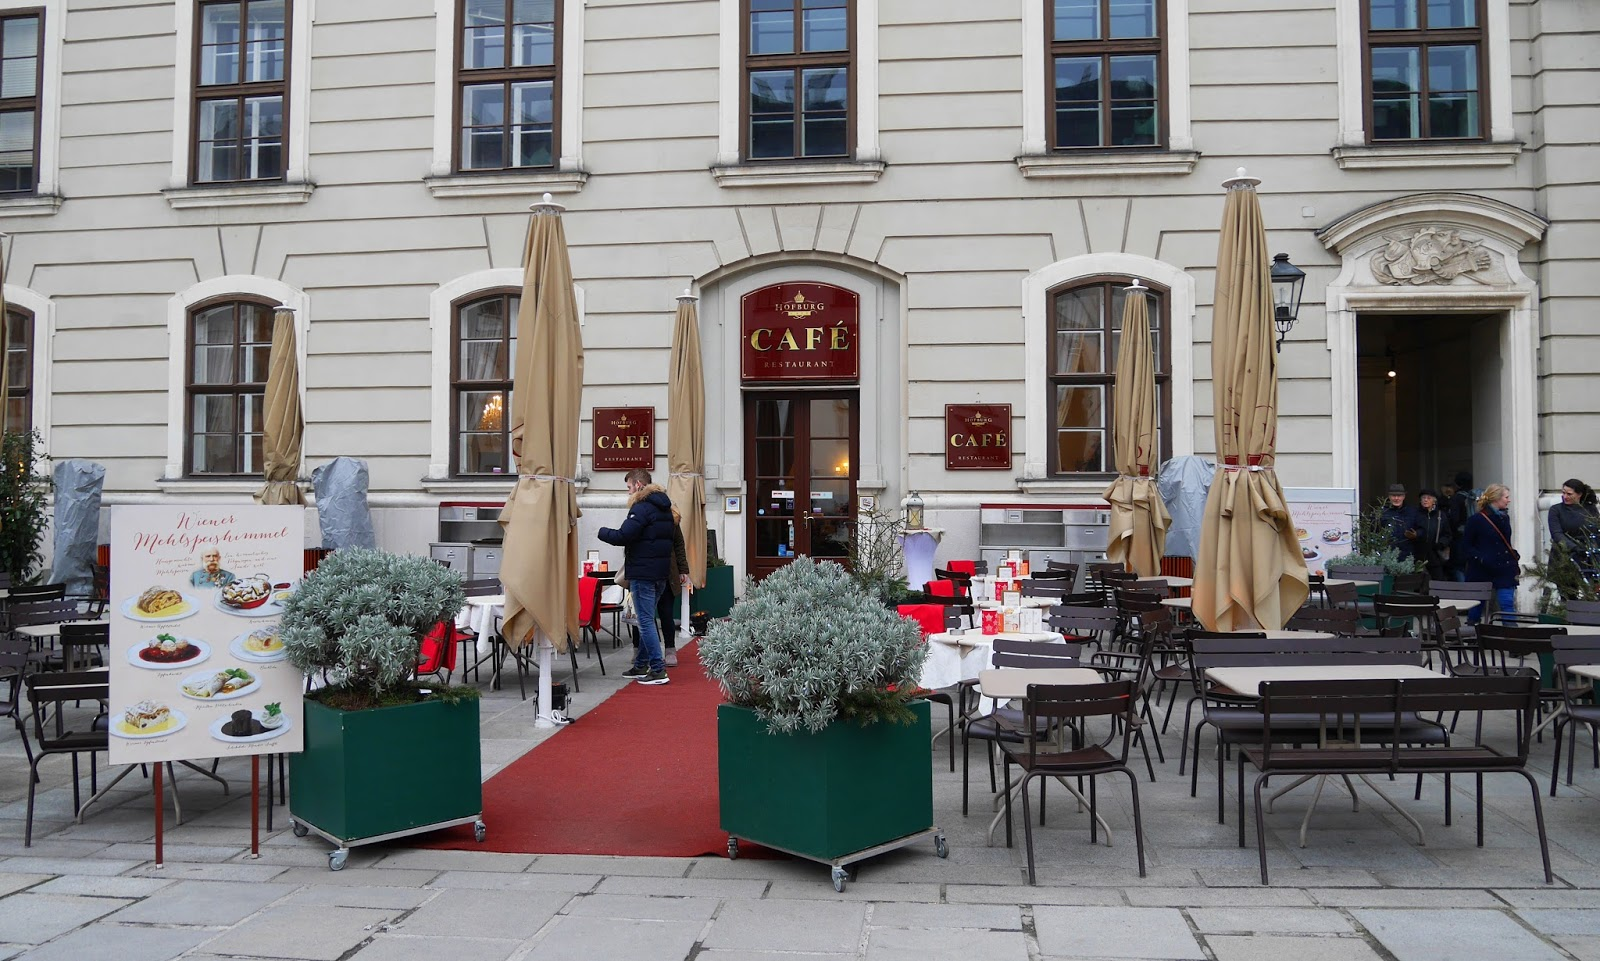 A café in Vienna city centre